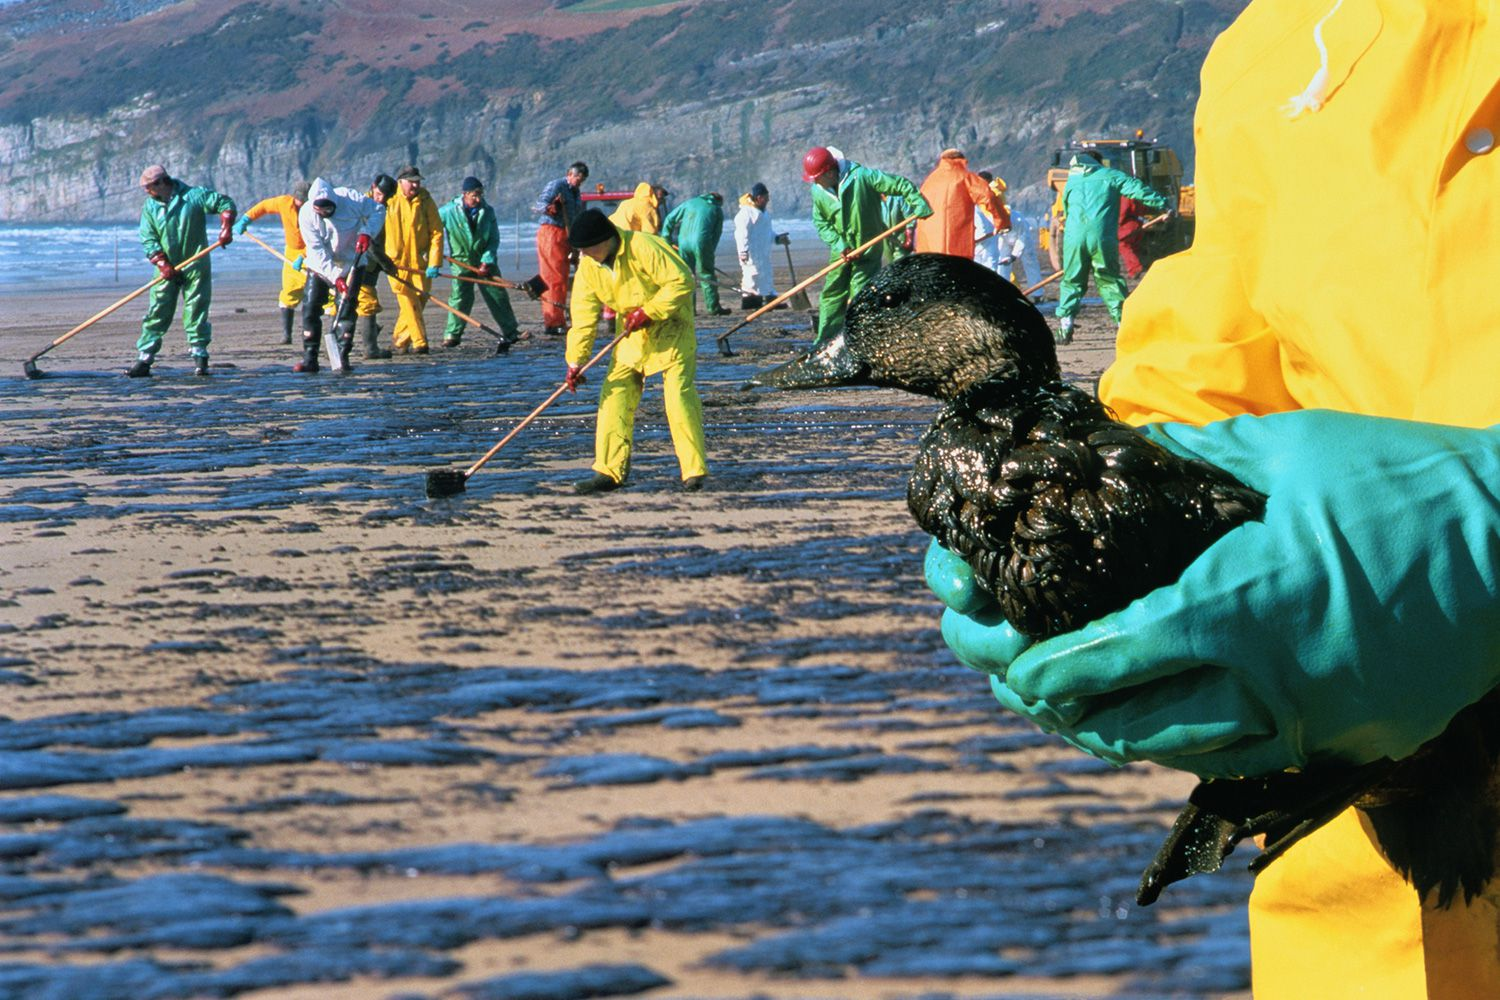 Huge 400 000 Gallon Oil Spill Threatens Ecosystems In The